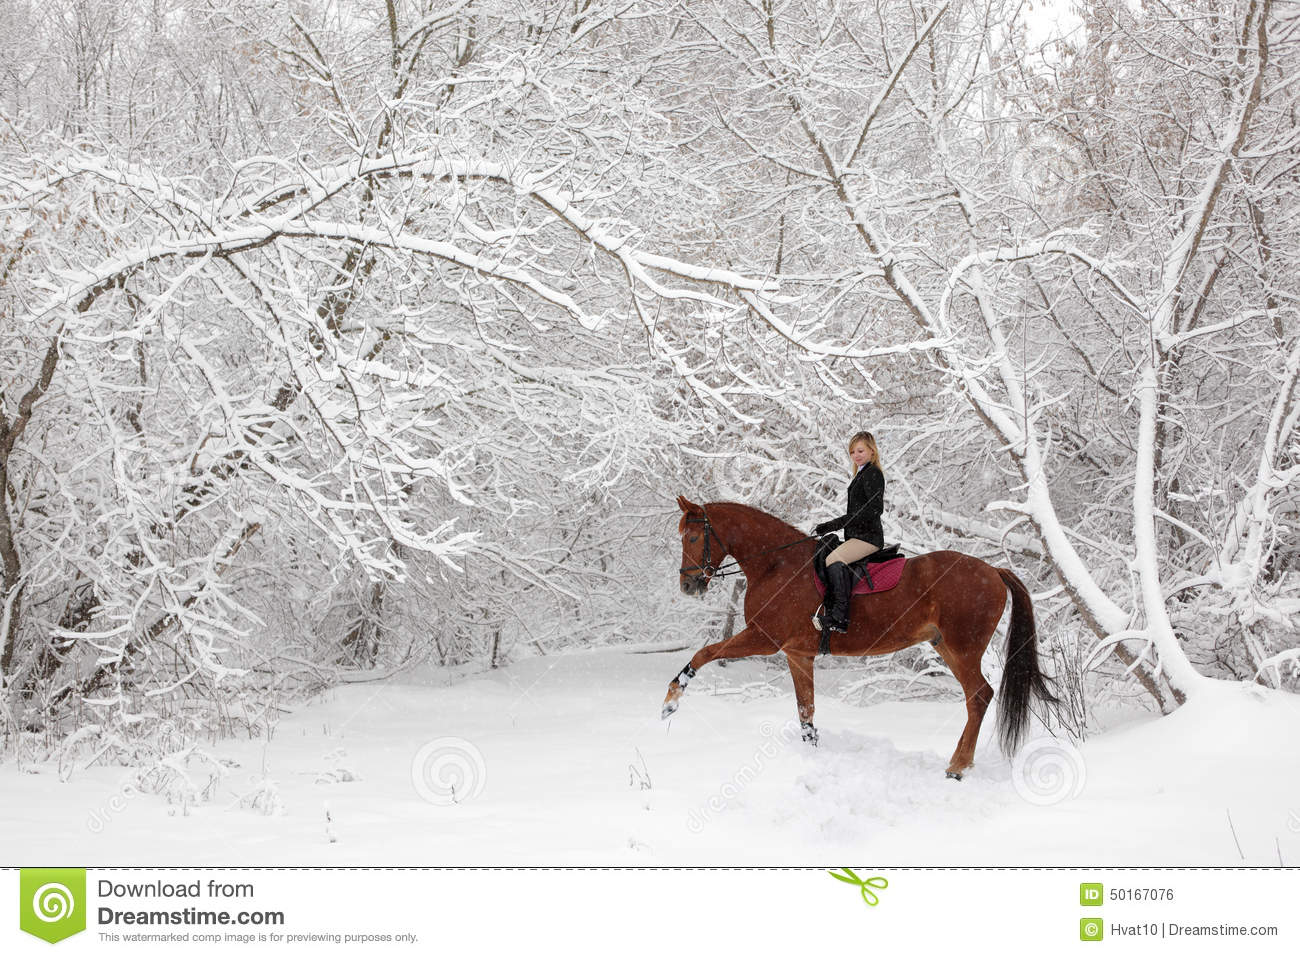 horseback riding in scenic winter snowfall stock photo. Black Bedroom Furniture Sets. Home Design Ideas